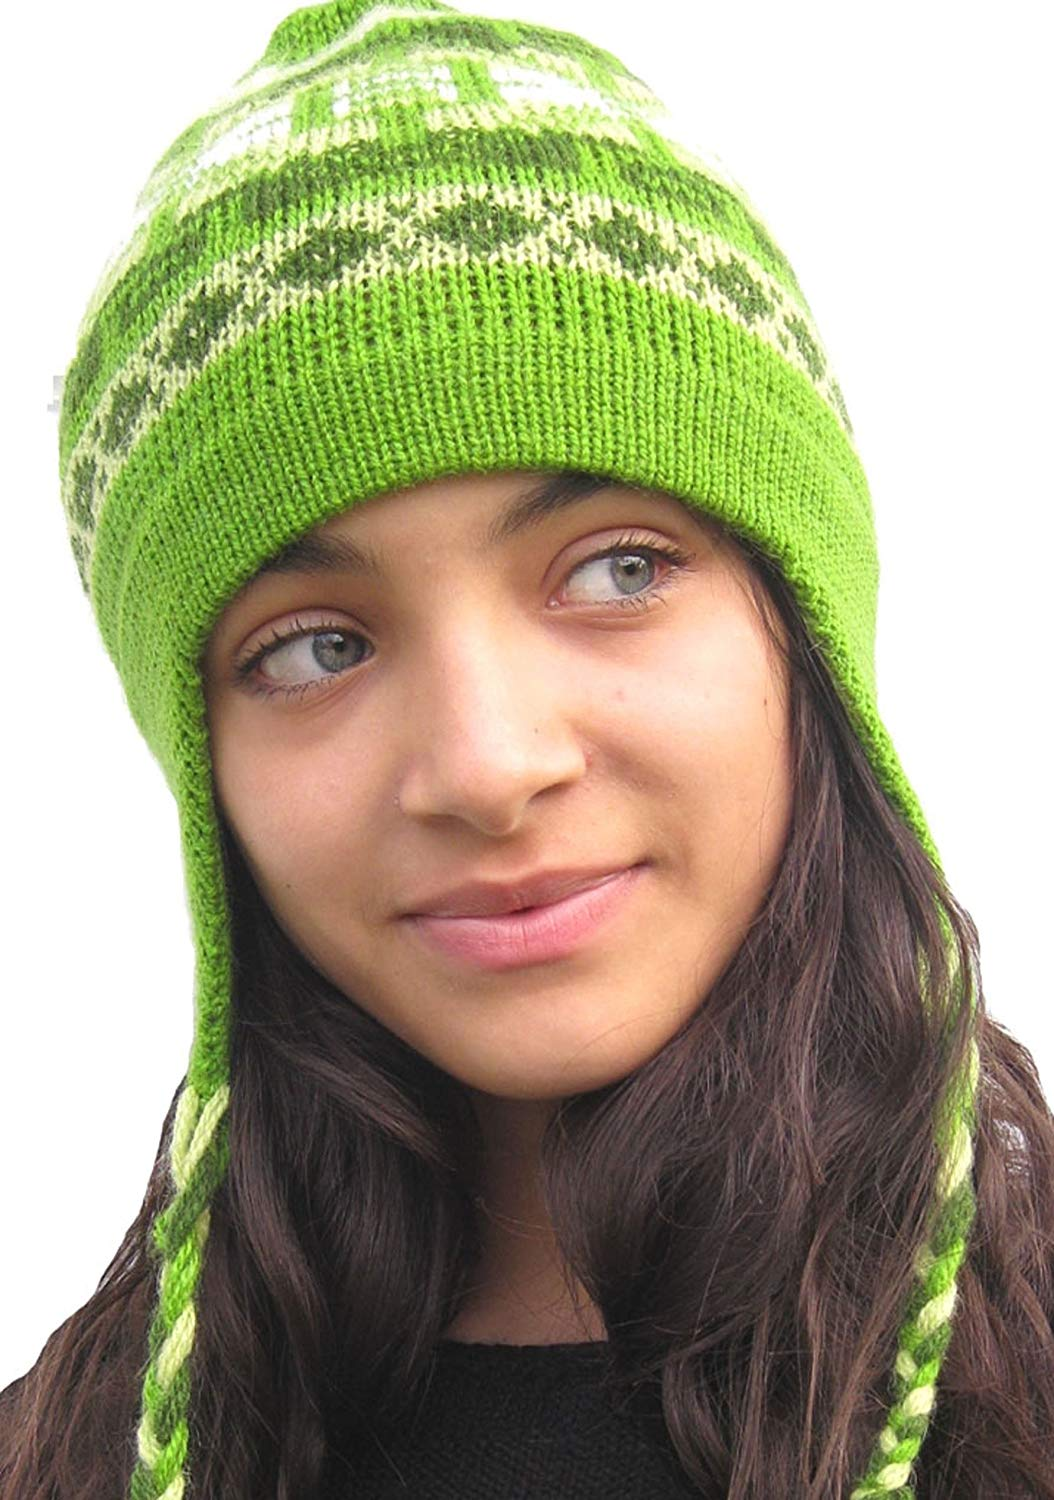 97be91965c5 Get Quotations · Custom Made Order - Handmade Thin Alpaca Hat with Earflaps  Apple Green